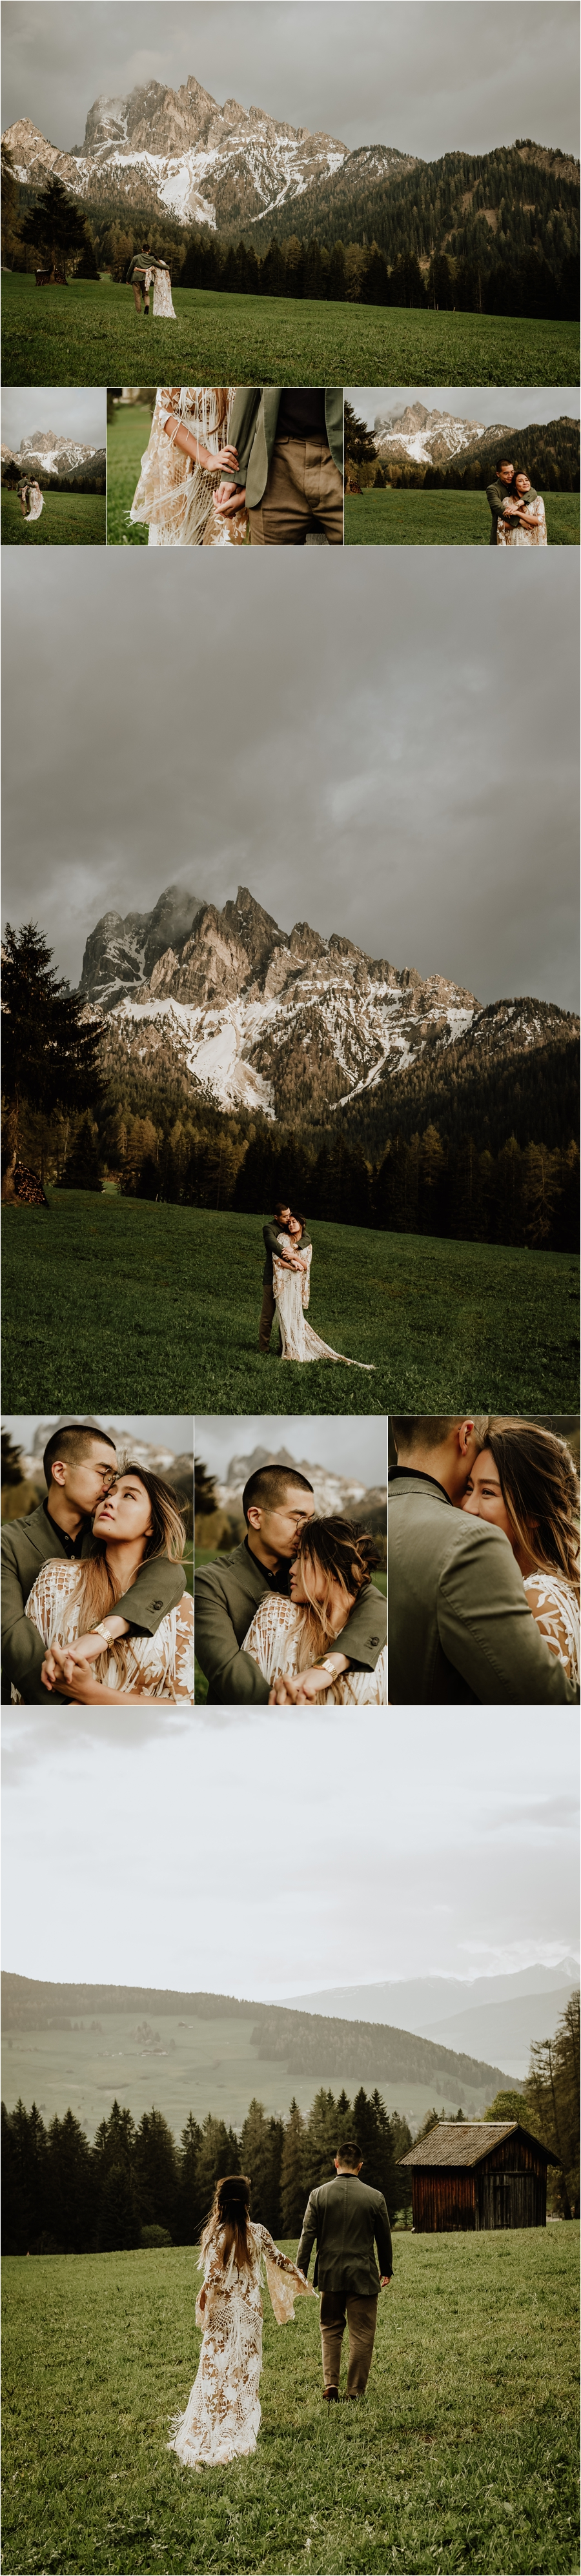 An adventure wedding enagement shoot in the Italian Dolomite mountains by Wild Connections Photography